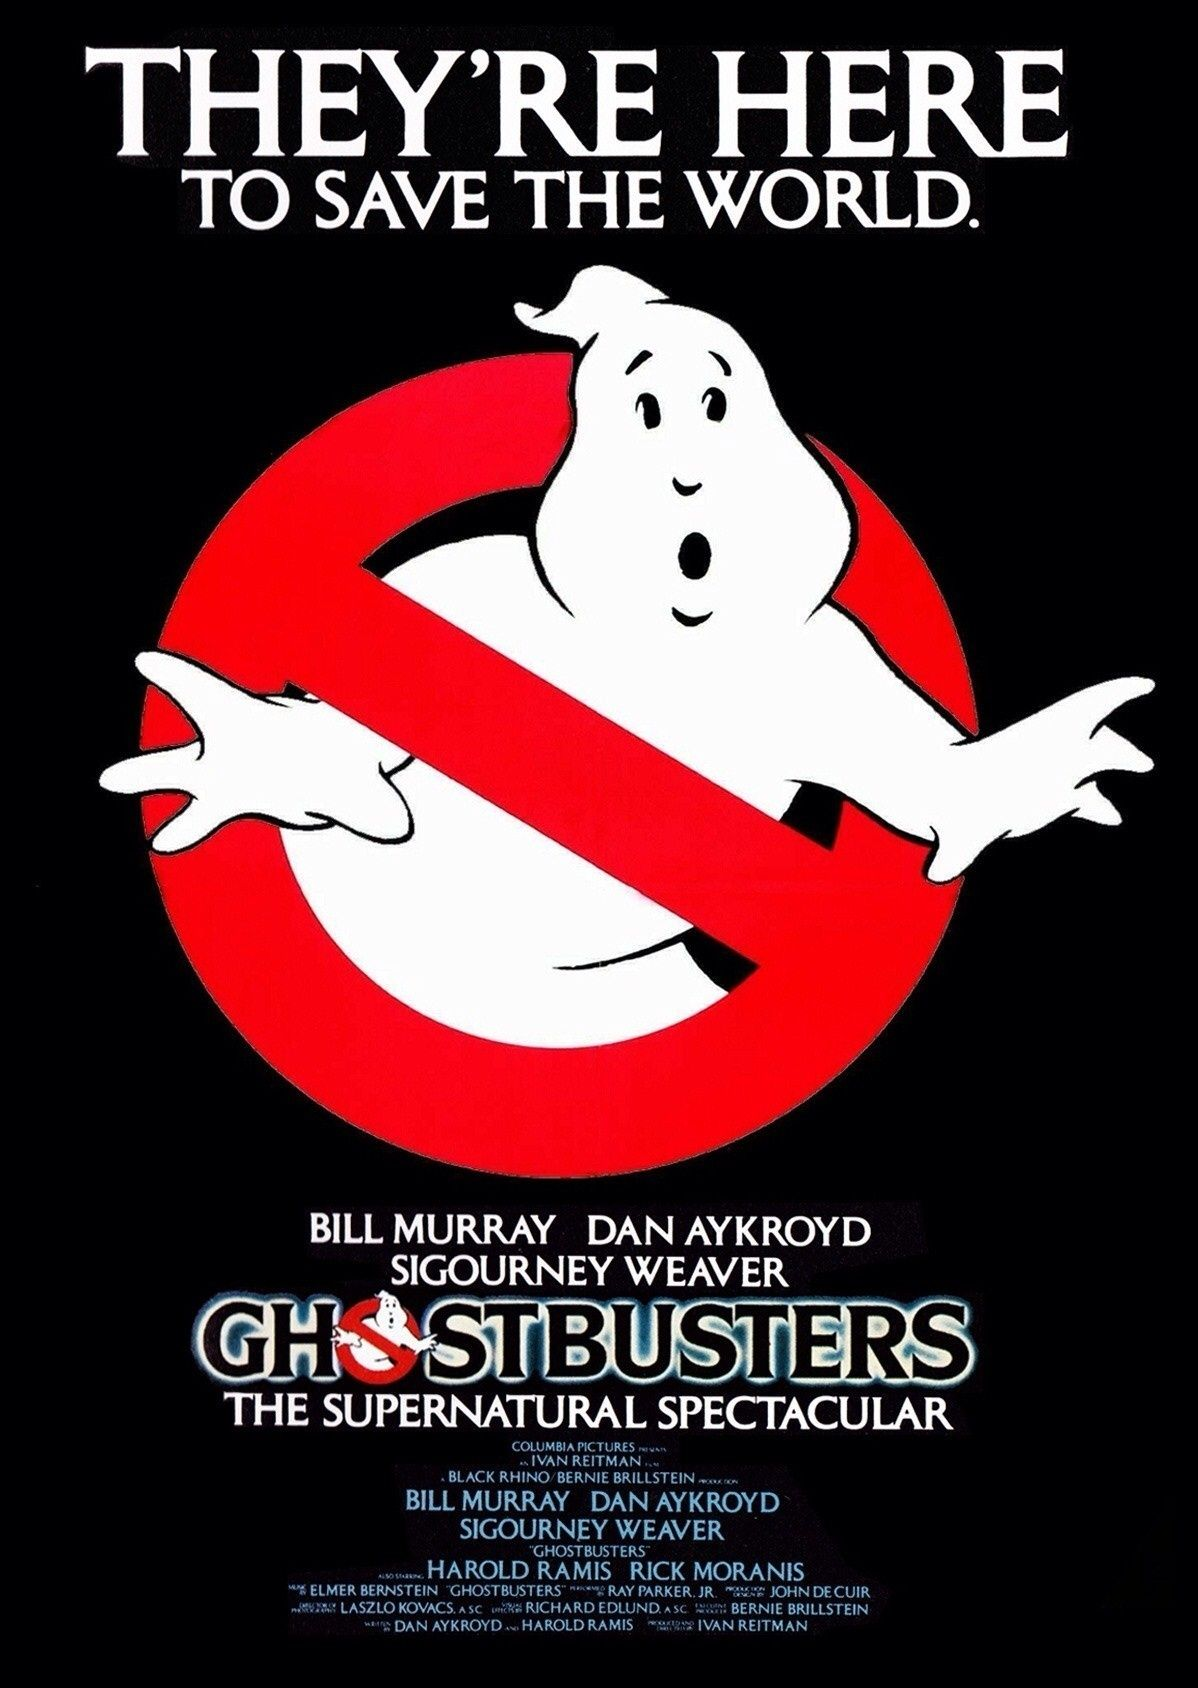 Ghostbusters Movie Poster 1984 Suncoast Movies Ghostbusters